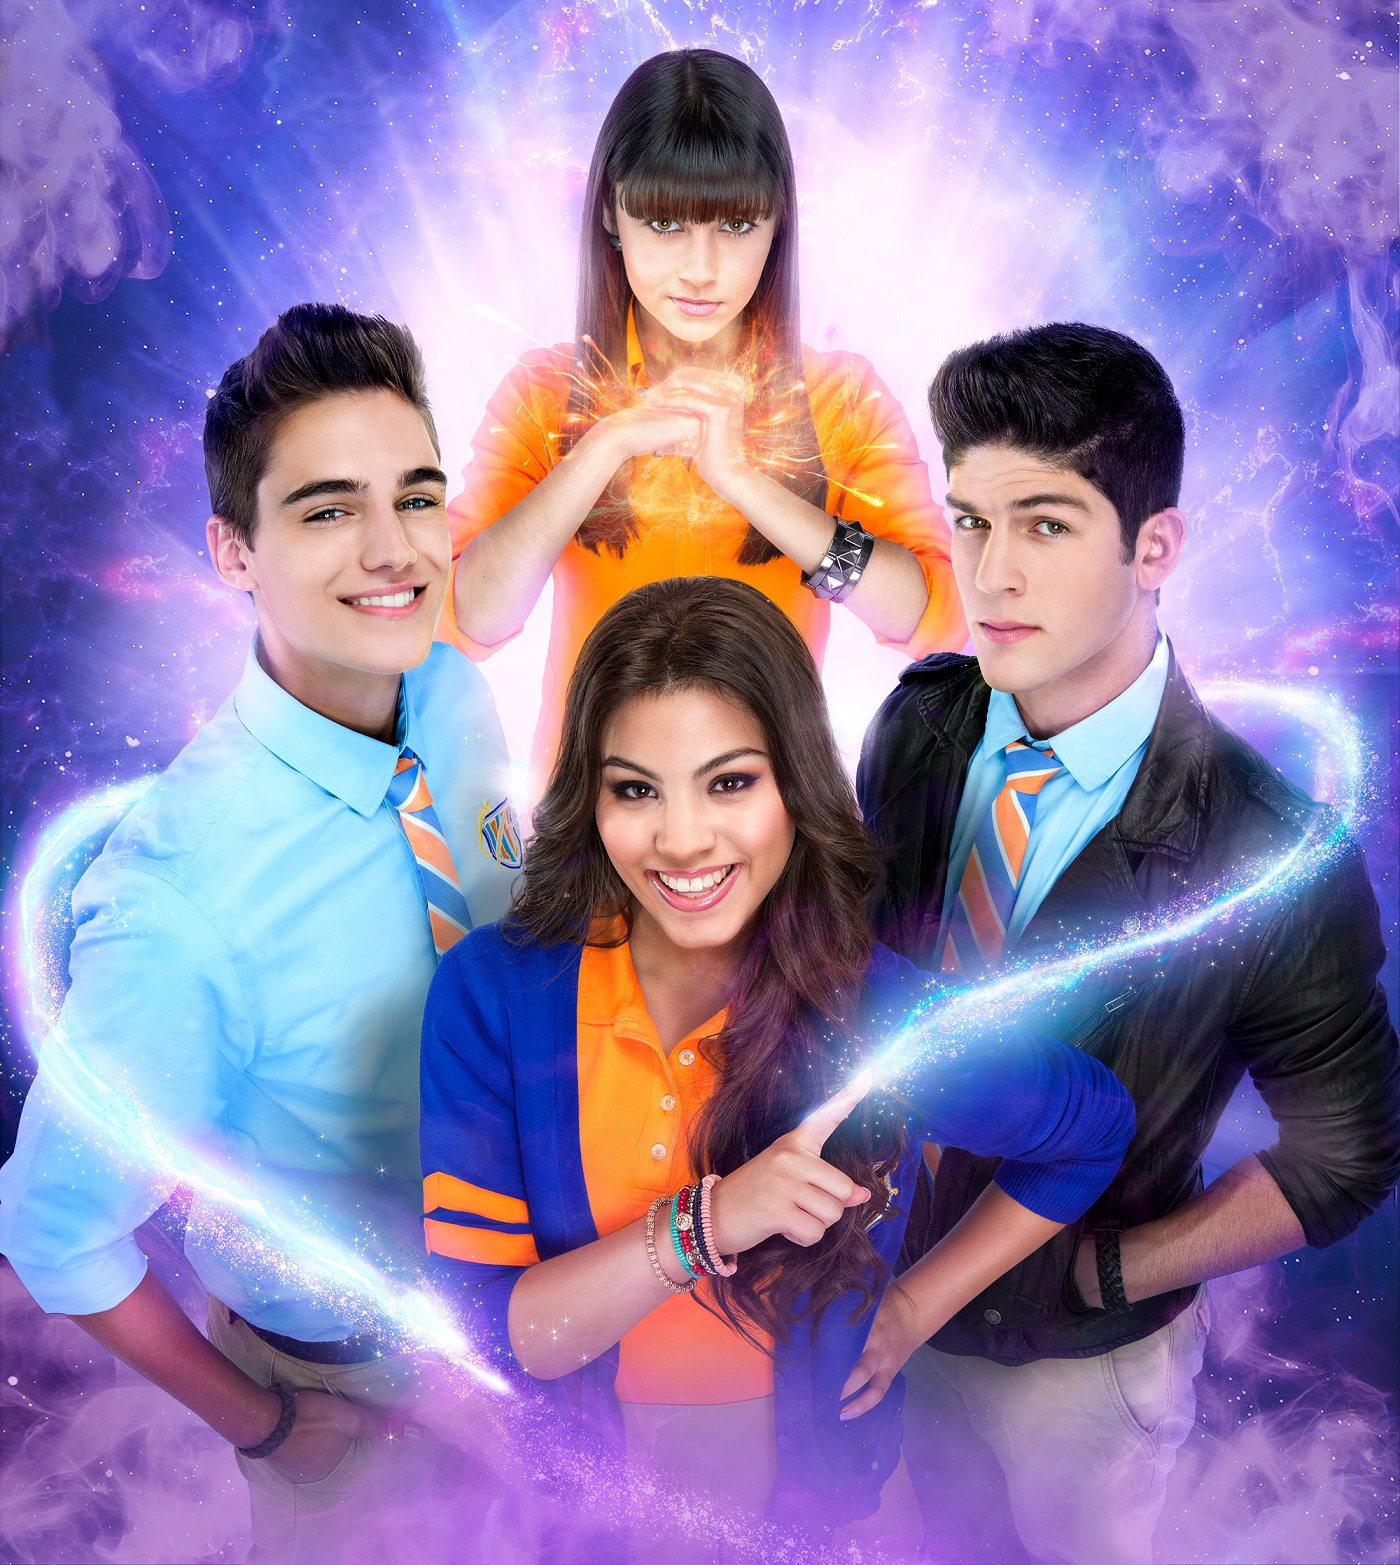 Every witch way 1